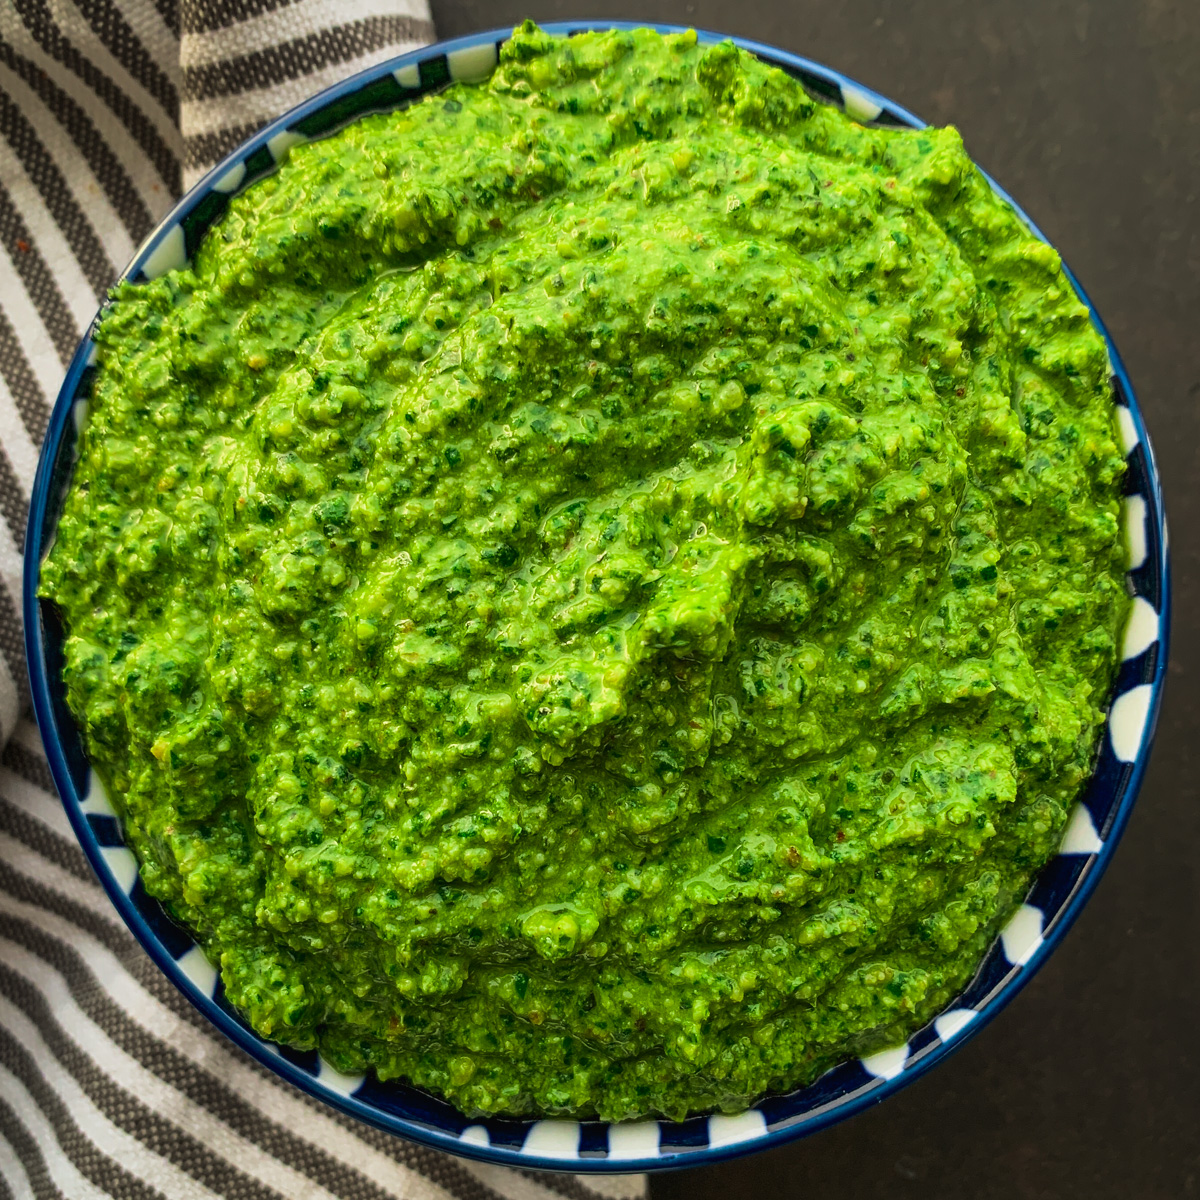 Finished pesto in bowl.